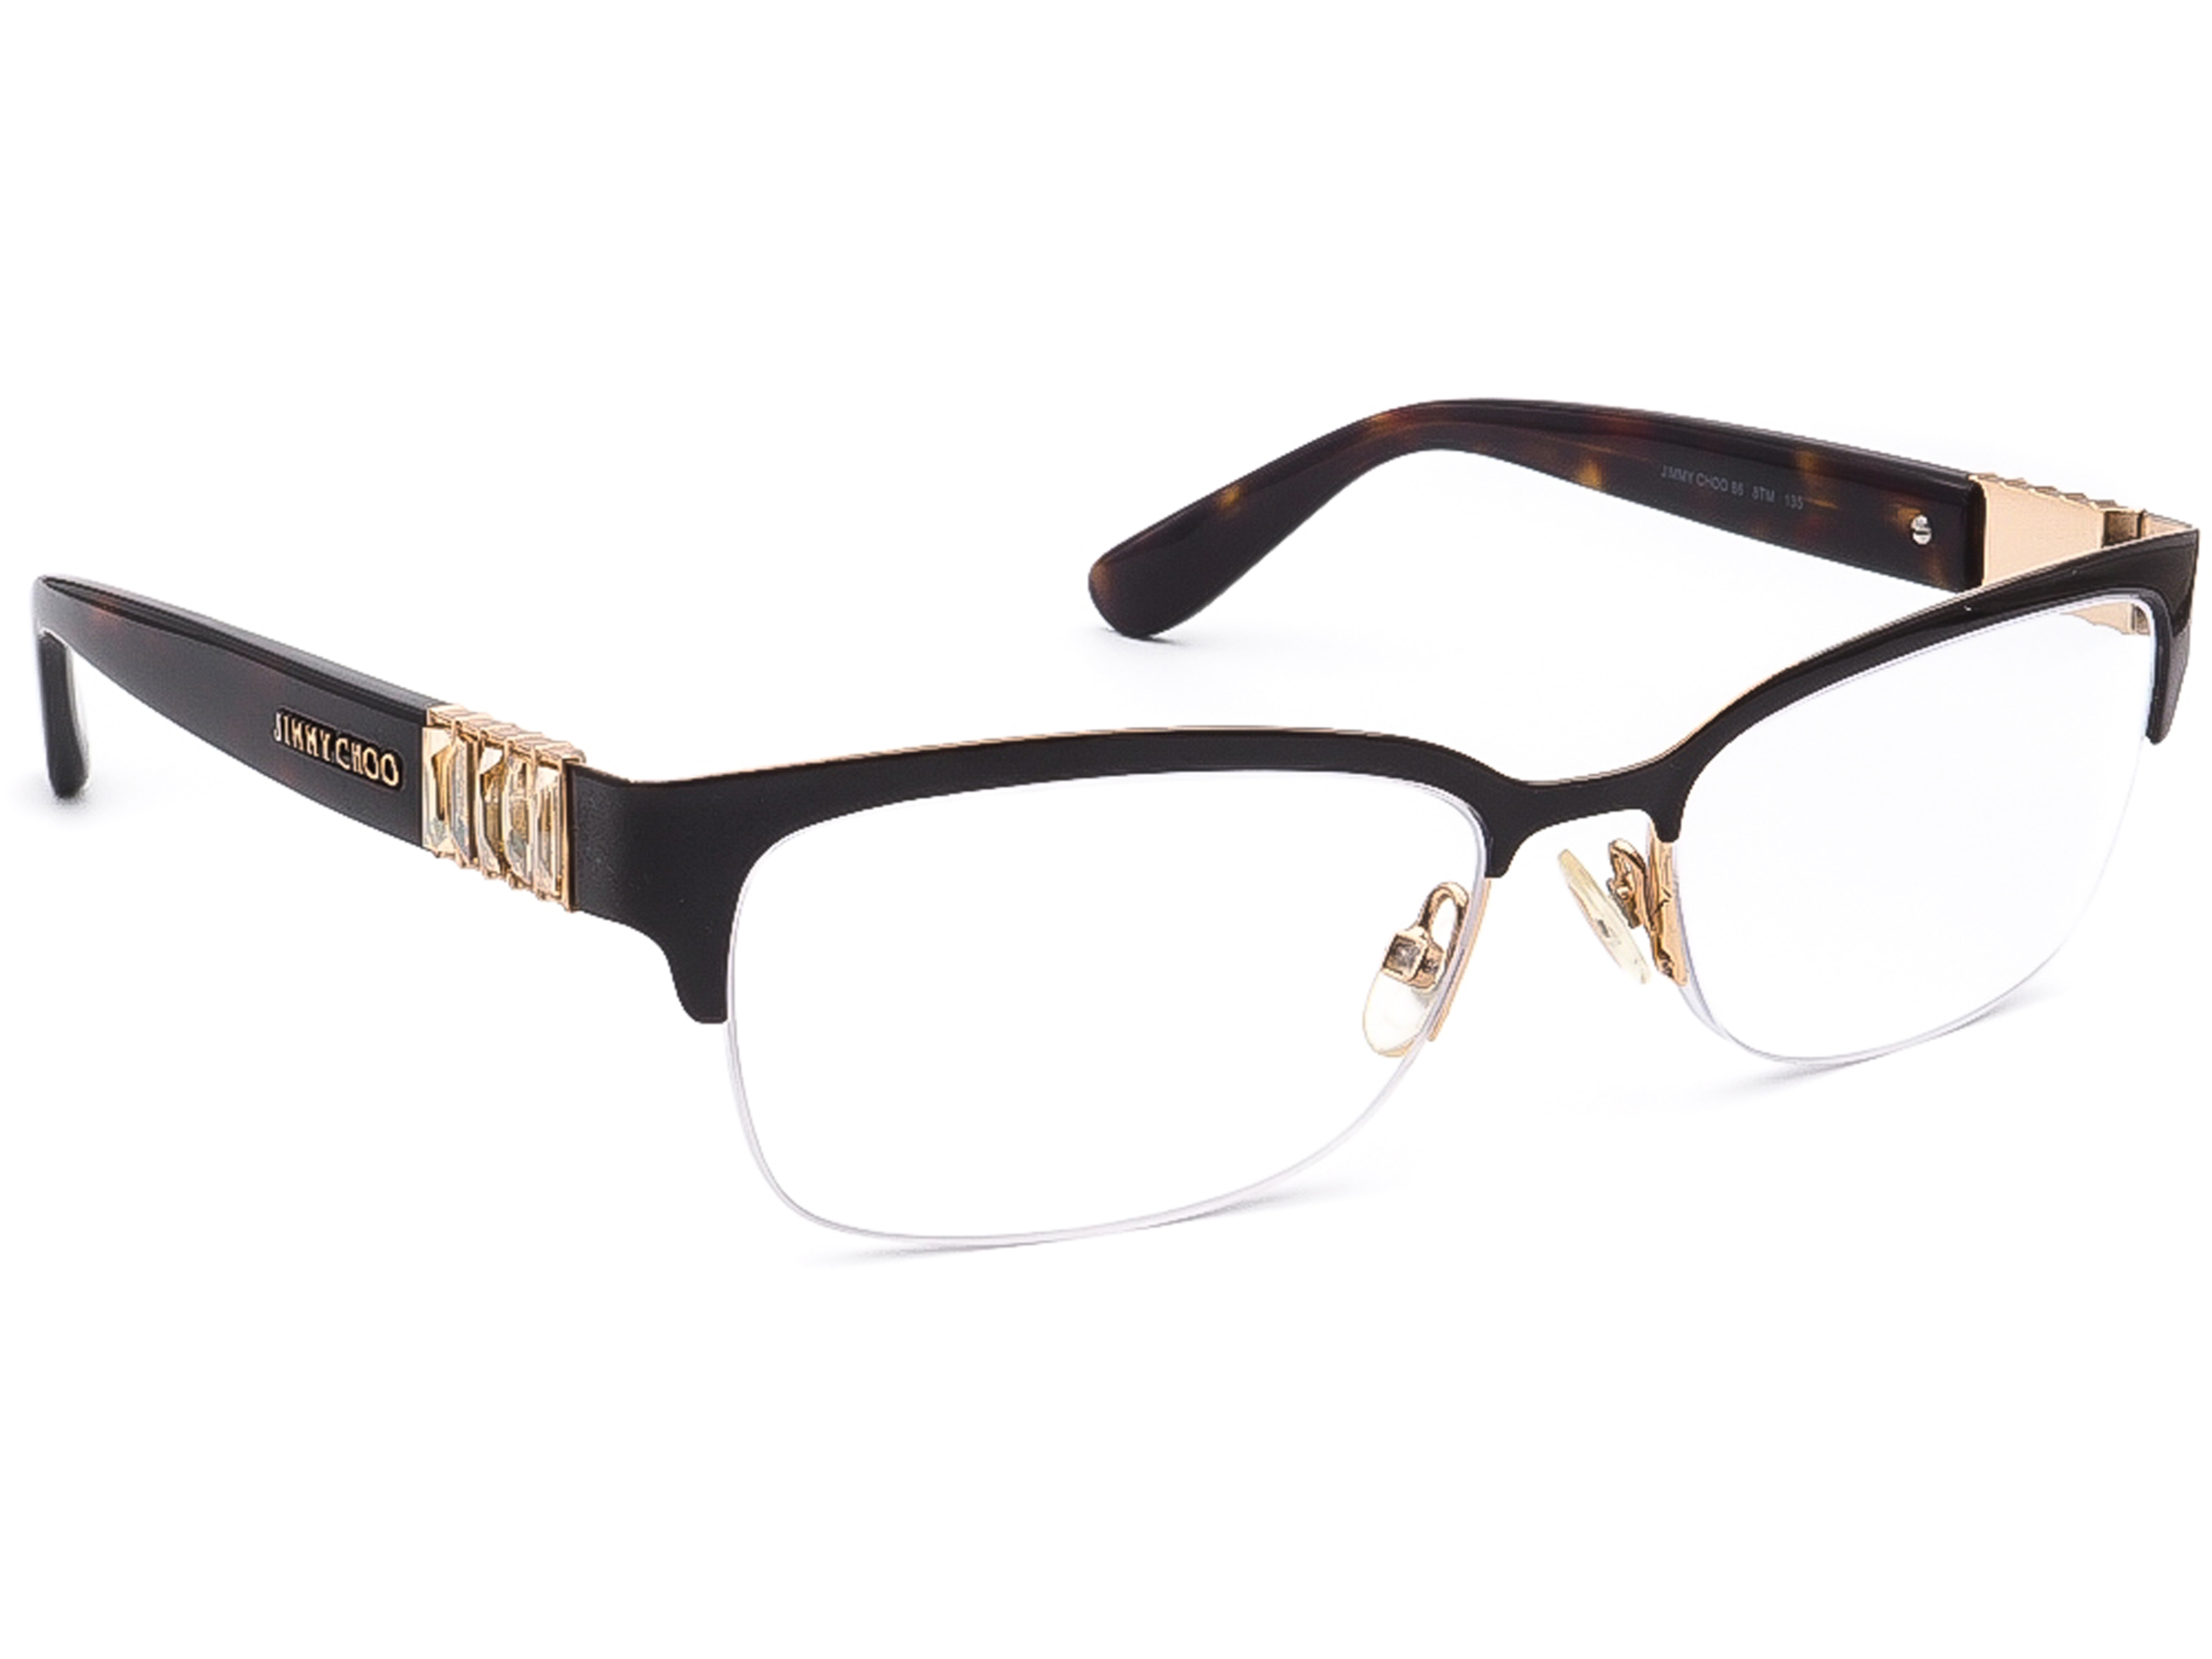 Jimmy Choo 86 8TM Eyeglasses